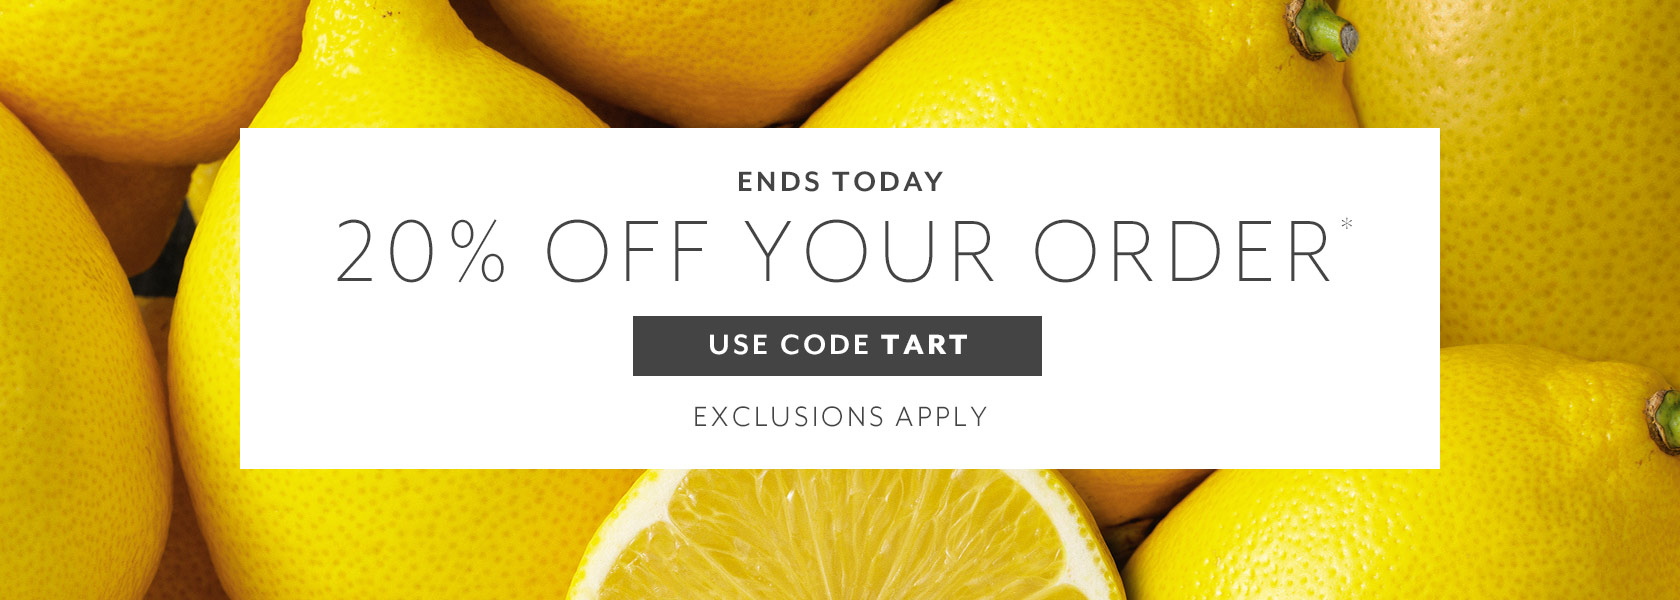 Ends today 20% off your order with code TART